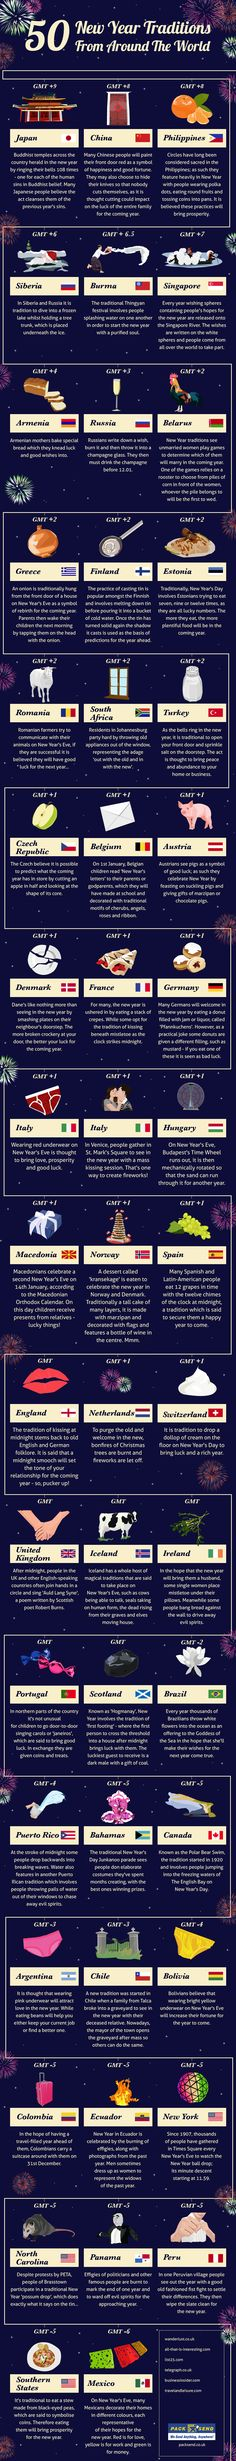 50 NEW YEAR TRADITIONS FROM AROUND THE WORLD [INFOGRAPHIC] #NEWYEAR #TRADITIONS #INFOGRAPHIC